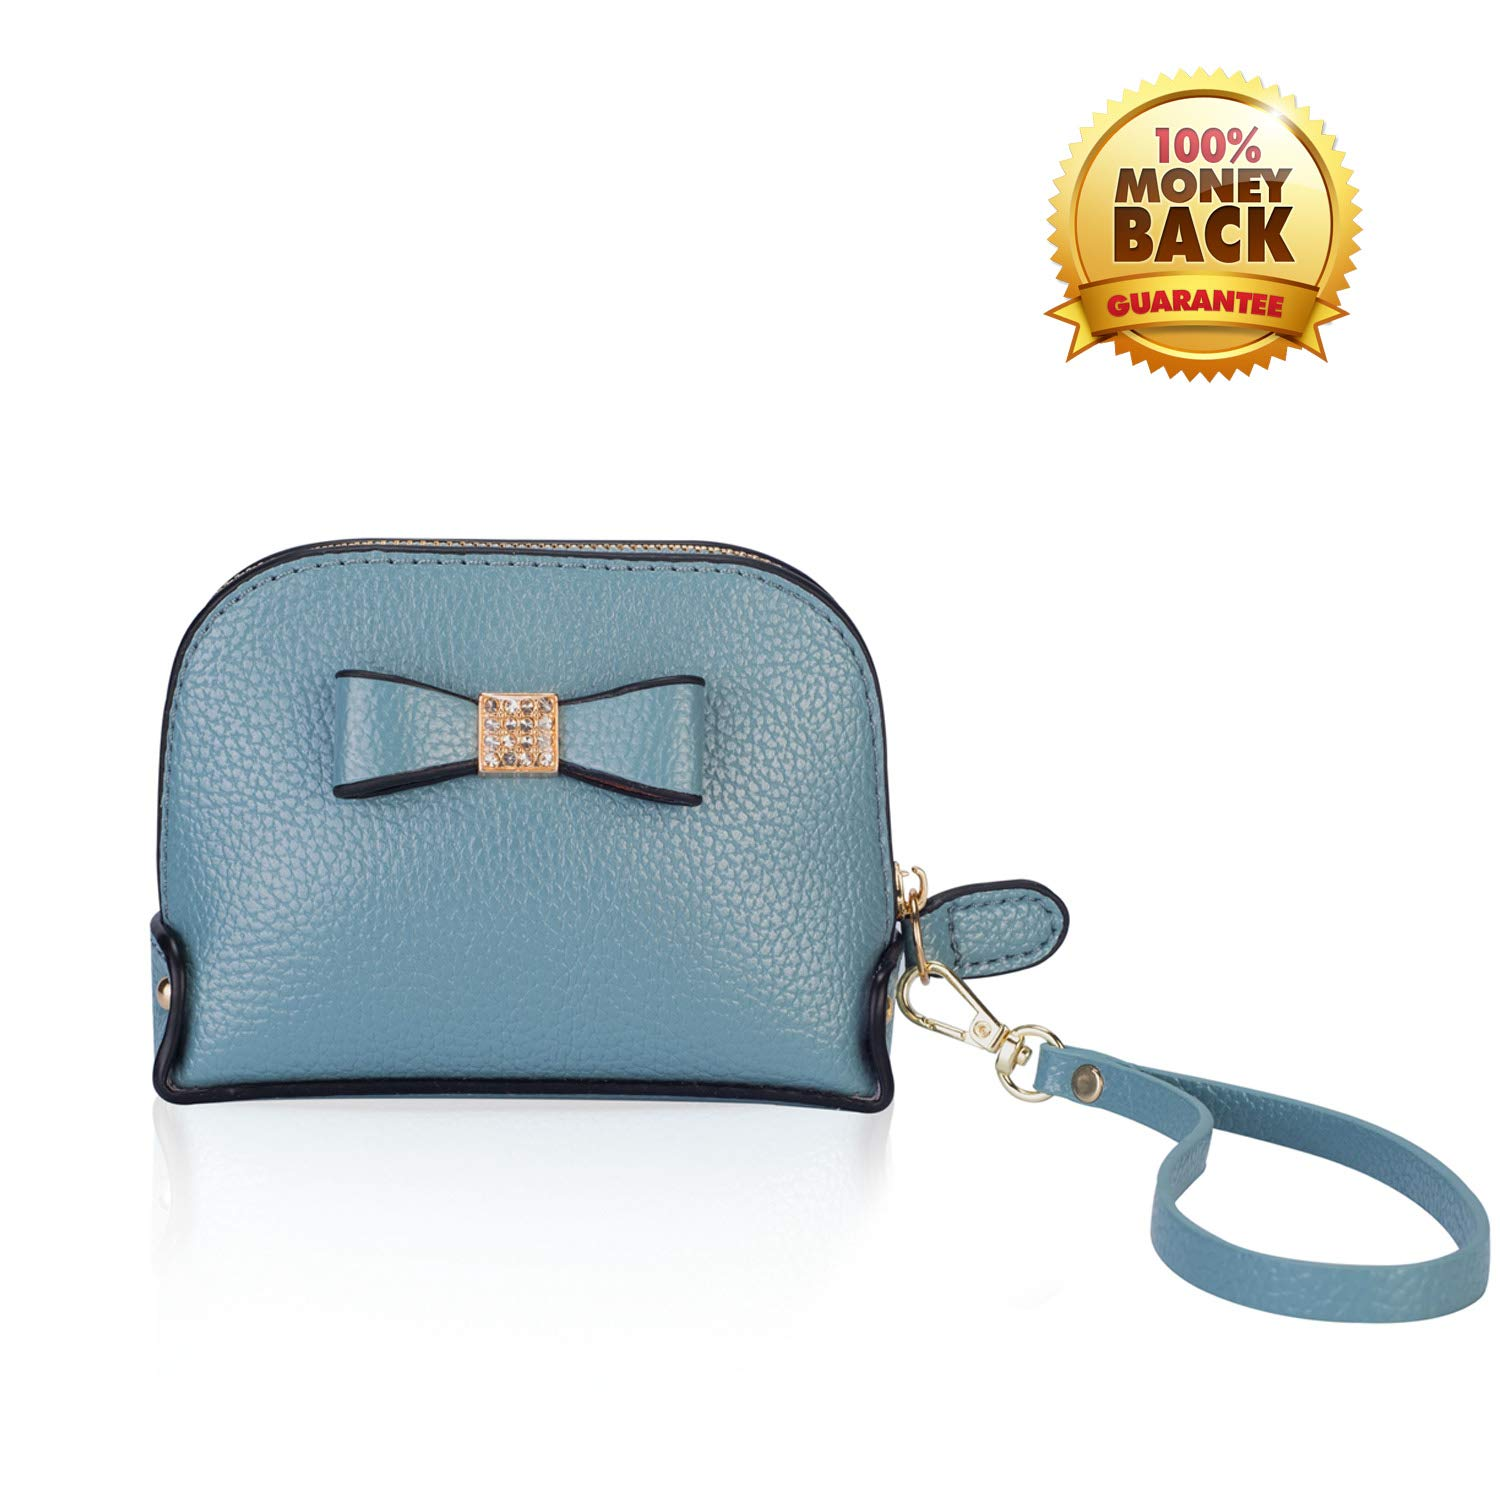 Coin Purse Wallet leather Wristlet Handbags with Wrist Strap Cute Mini Designer Pouch Great Gifts for Women Girls (Bow Blue) by JZE (Image #1)